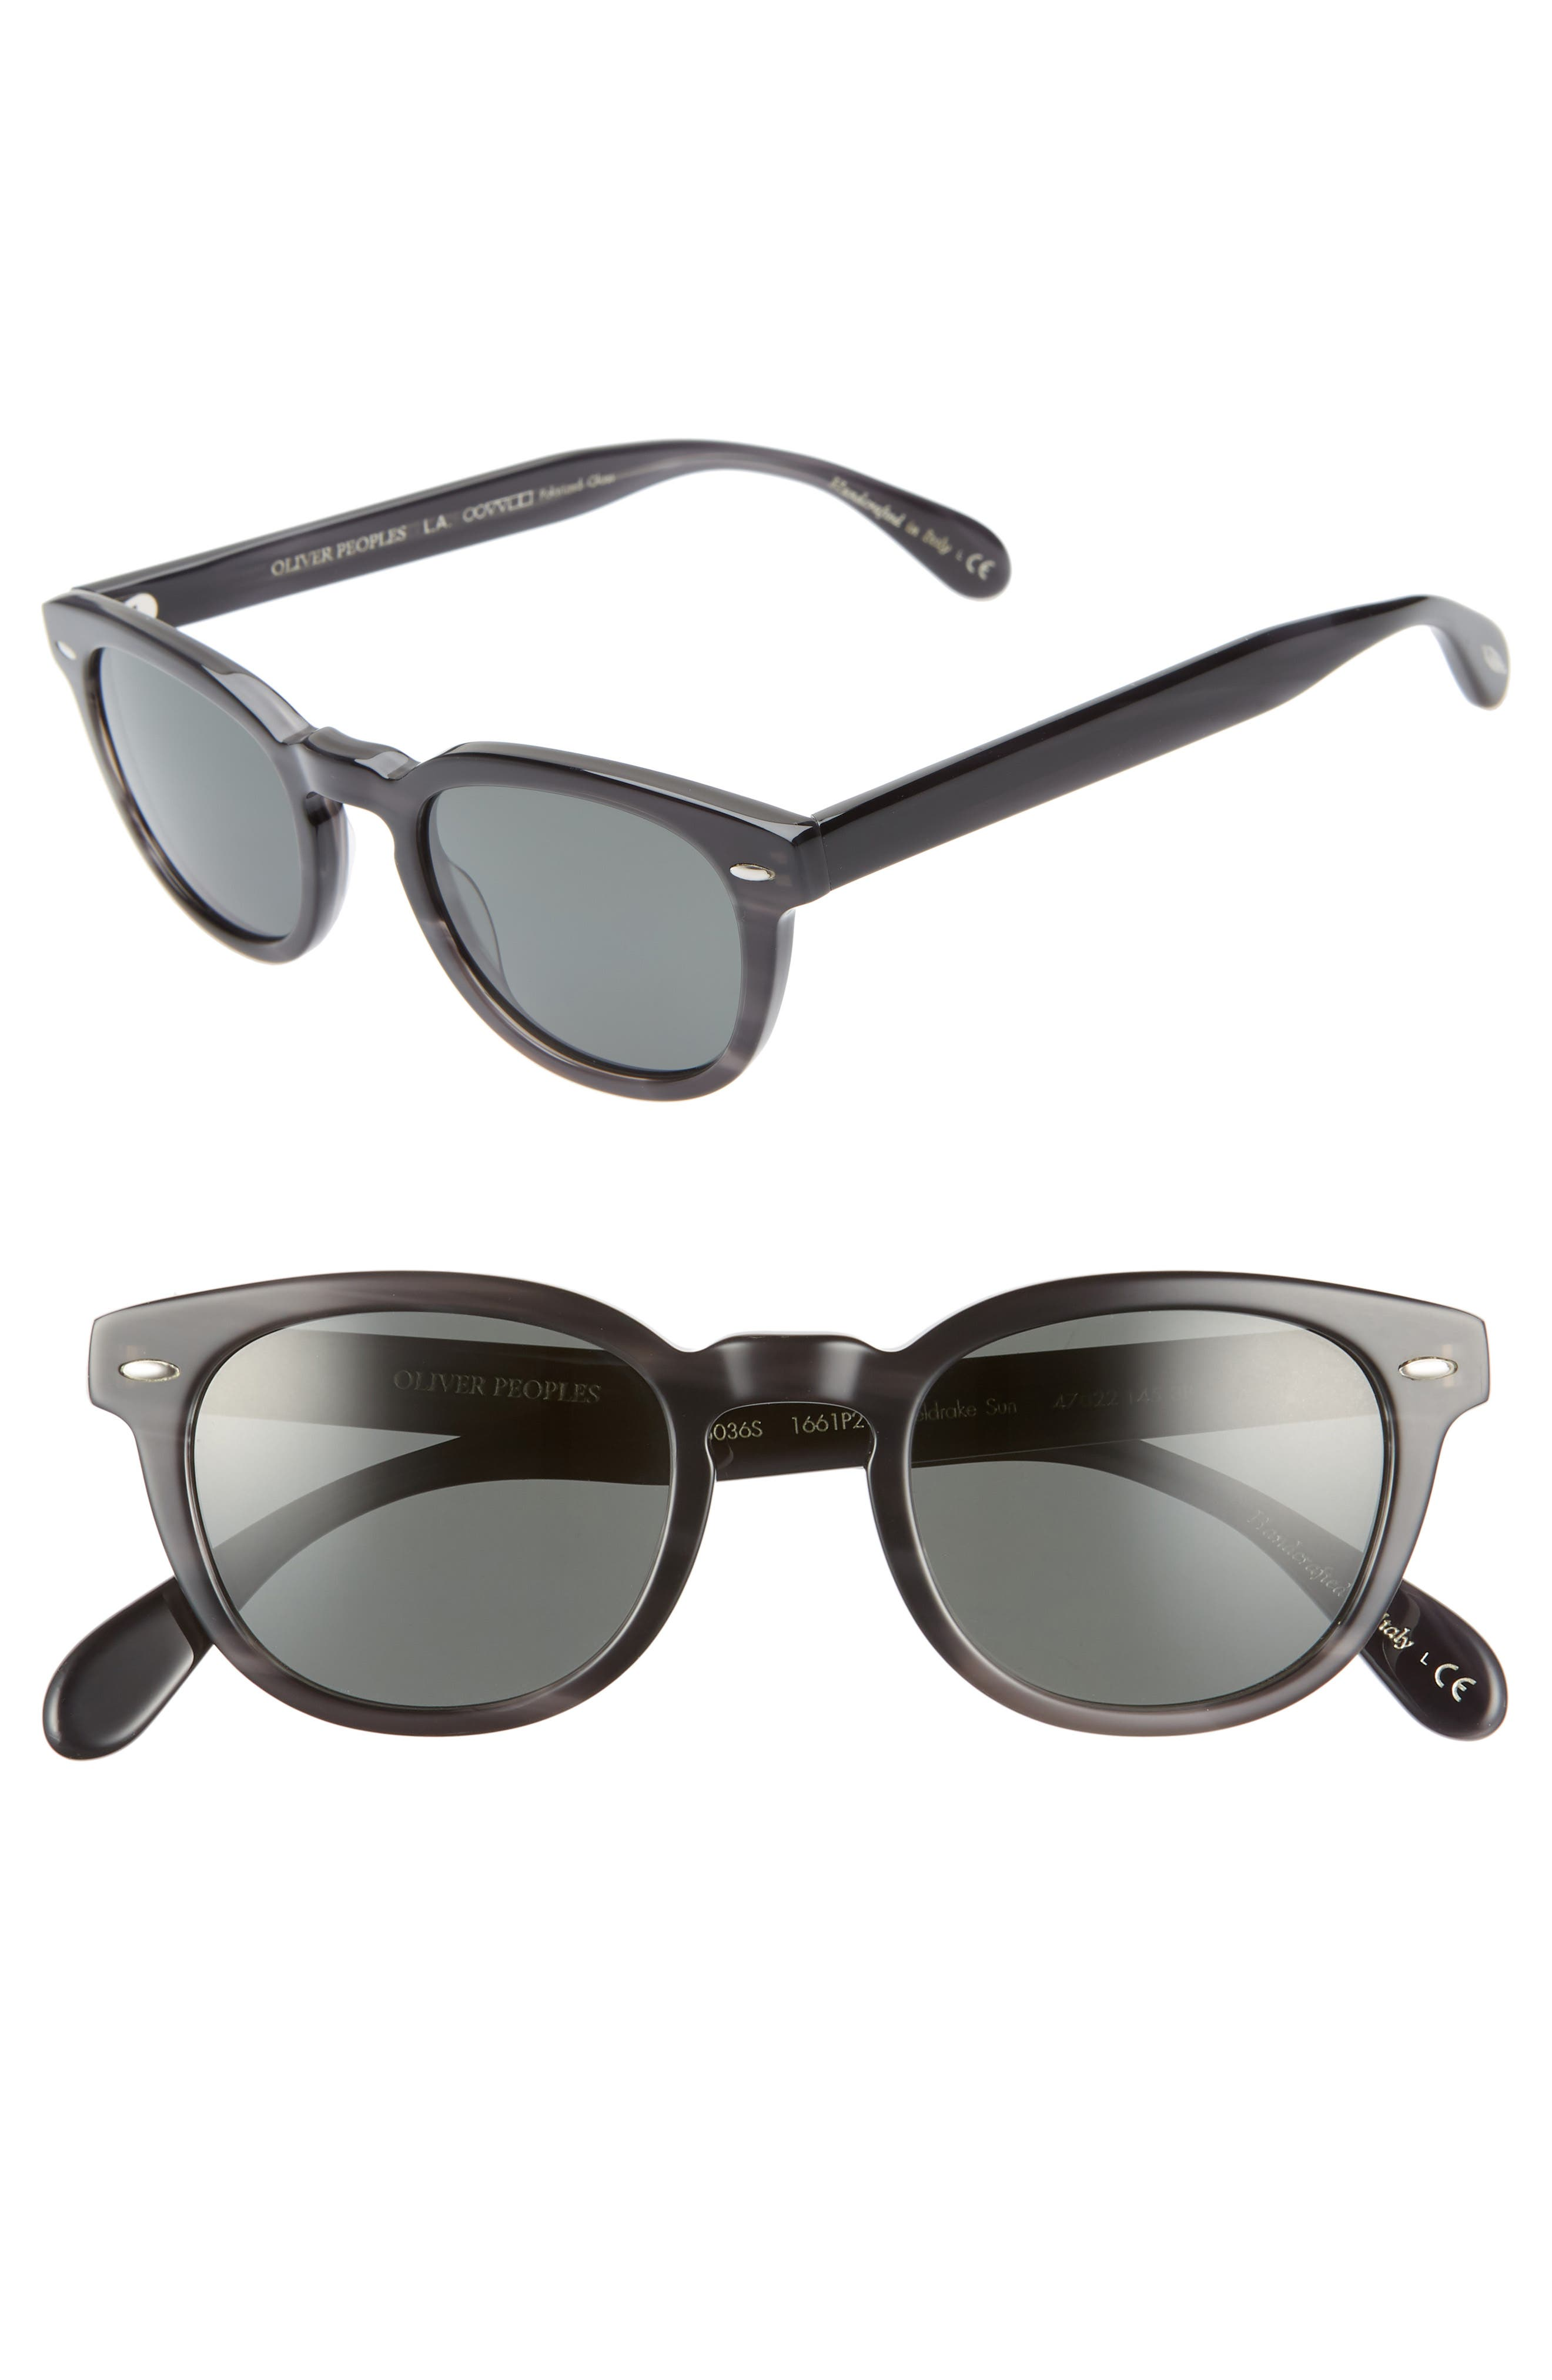 OLIVER PEOPLES Men'S Sheldrake Round Polarized Sunglasses - Charcoal Tort in Charcoal Tortoise